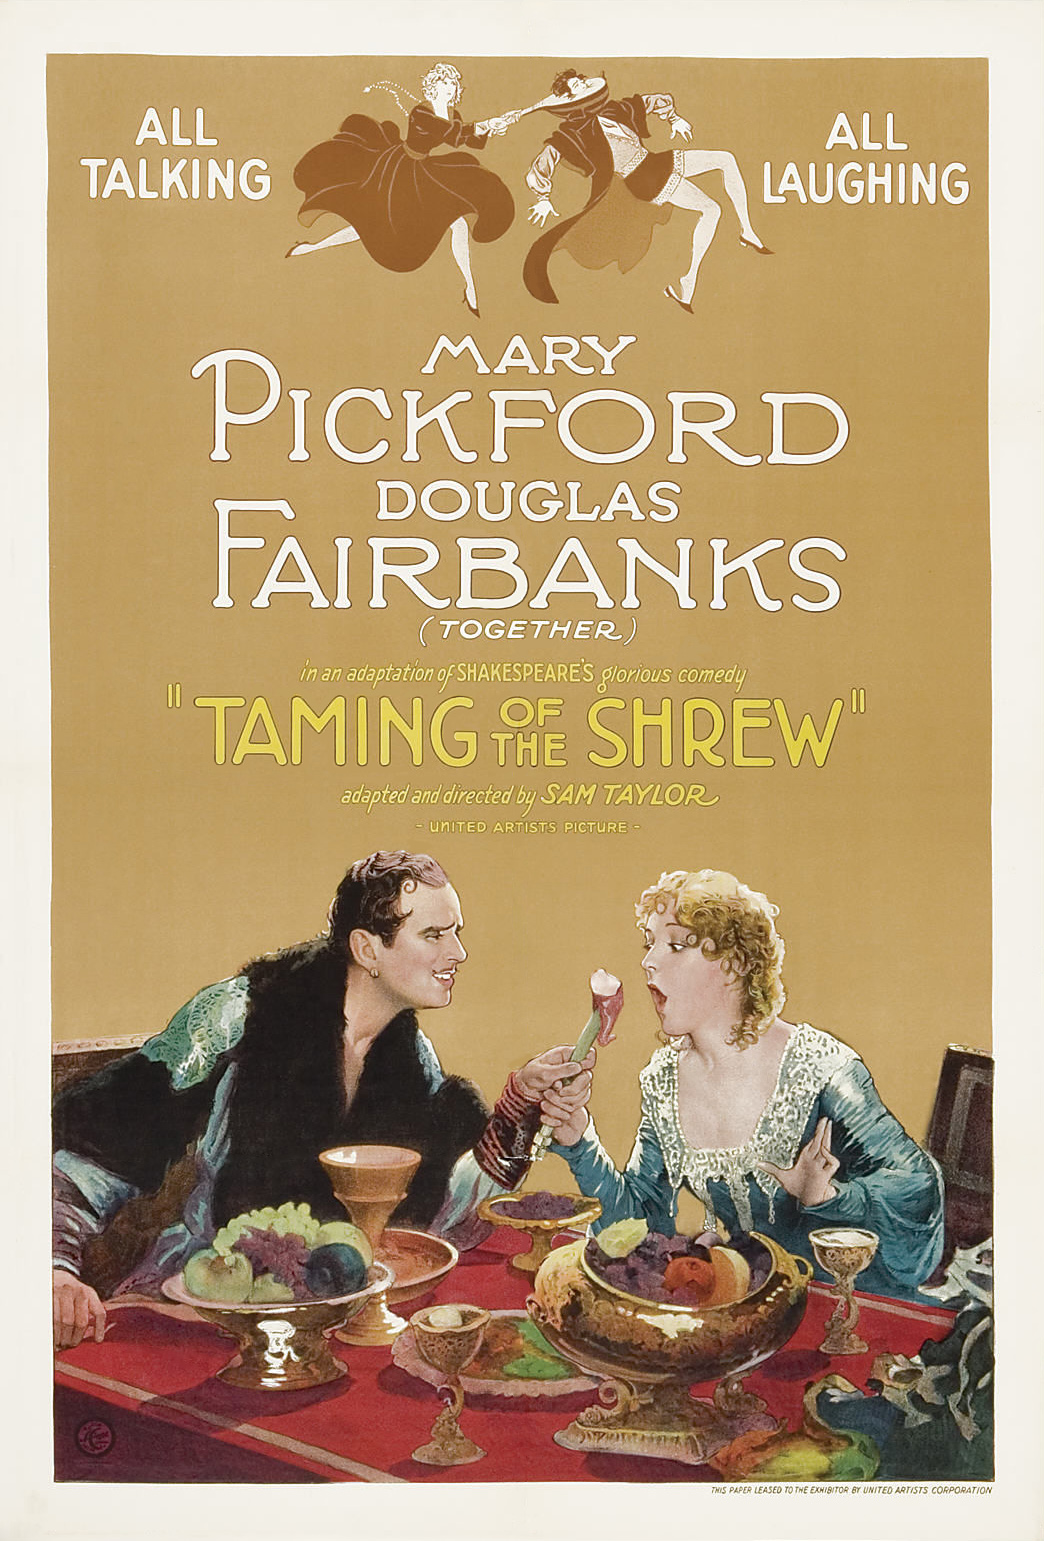 the taming of the shrew is - the taming of the shrew katherine in william shakespeare's play, the taming of the shrew, the shrew played by katherine, had a terrible outlook on life and just about everything else her negativity was caused by her younger, more beautiful sister bianca.